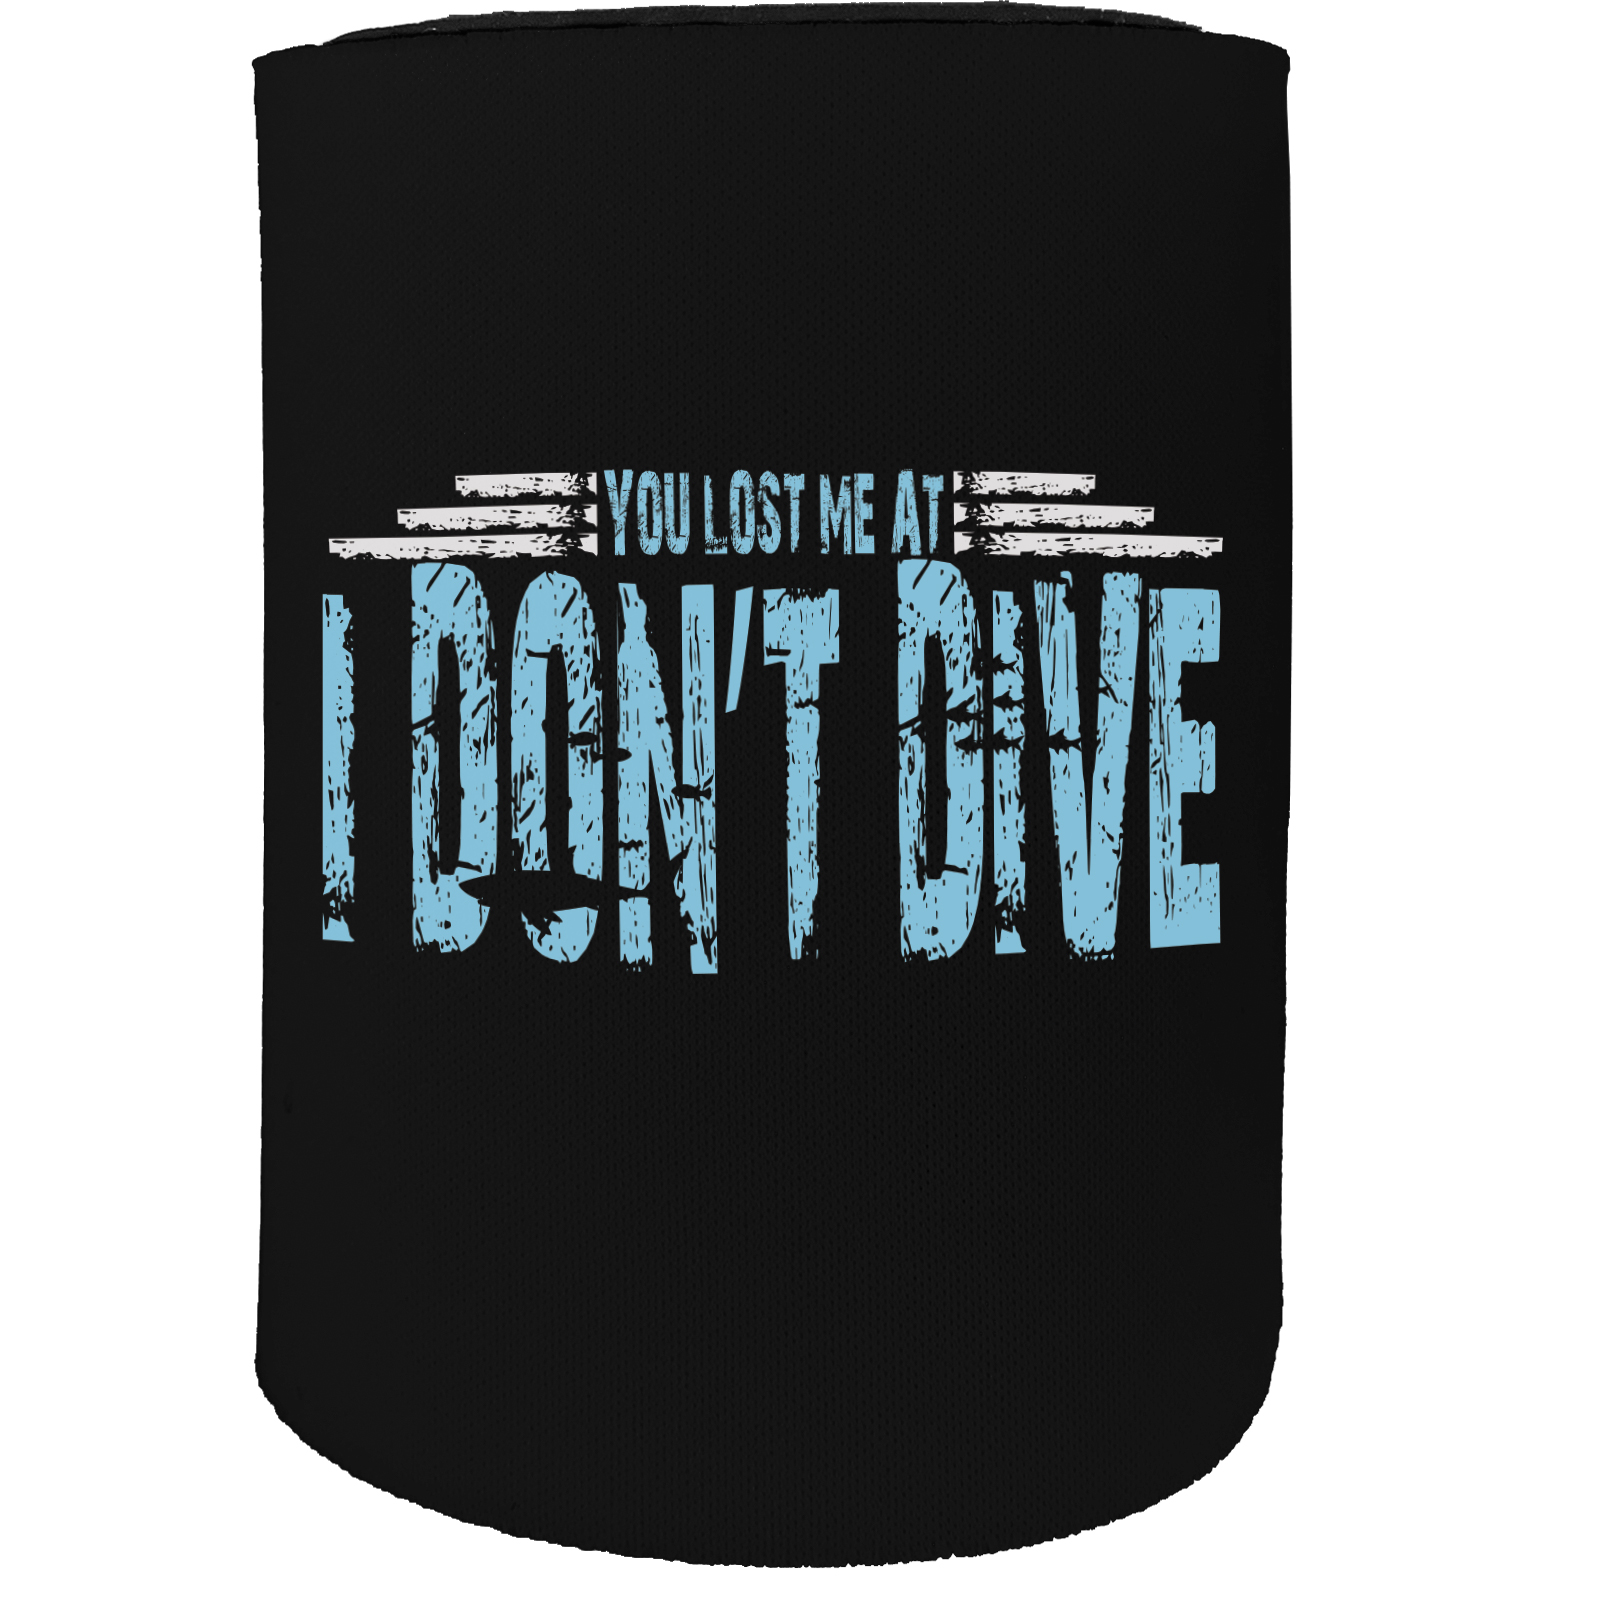 Ow Lost Dive Scuba Diving Stubby Holder Funny Novelty Birthday Stubbie Relieving Heat And Thirst.